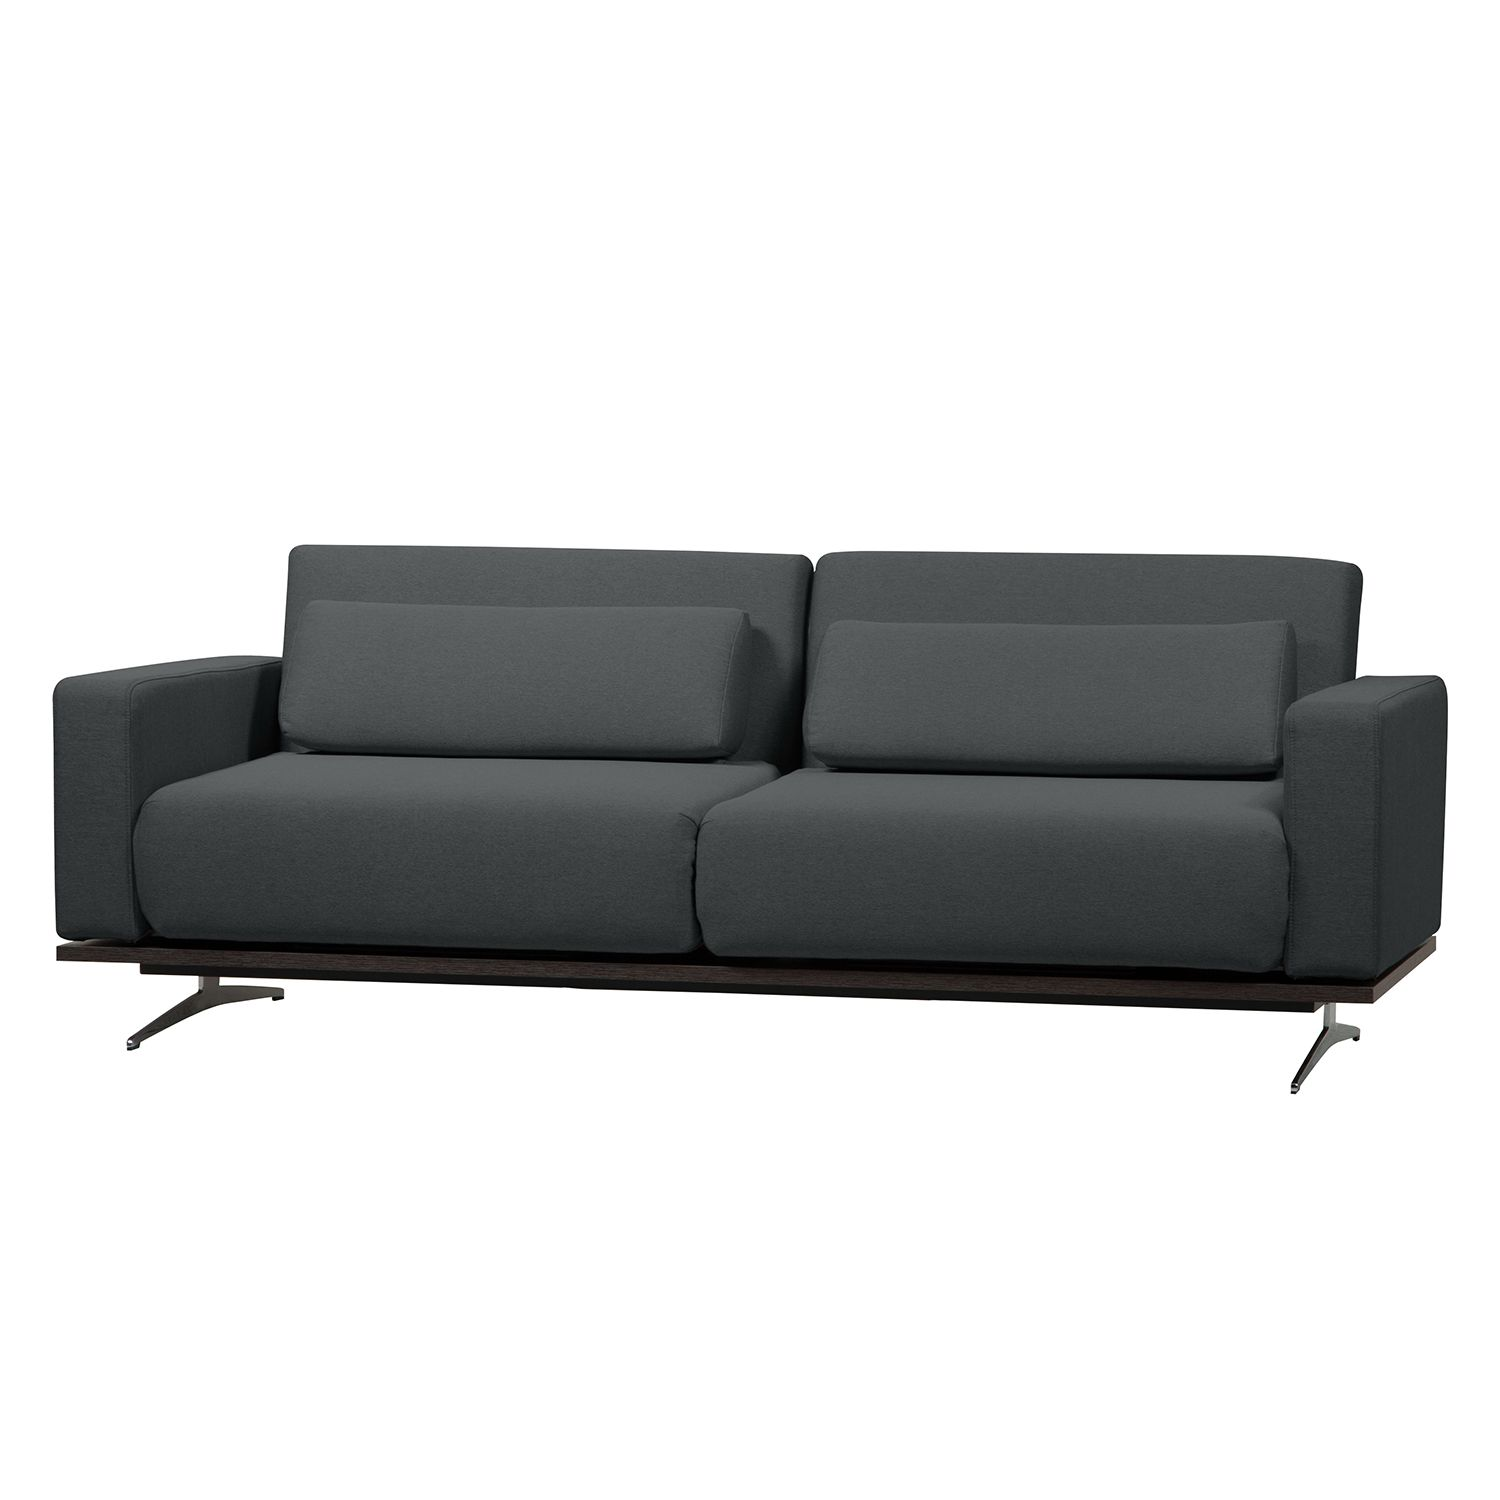 Schlafsofa Copperfield I - Webstoff - Stoff Zahira Anthrazit